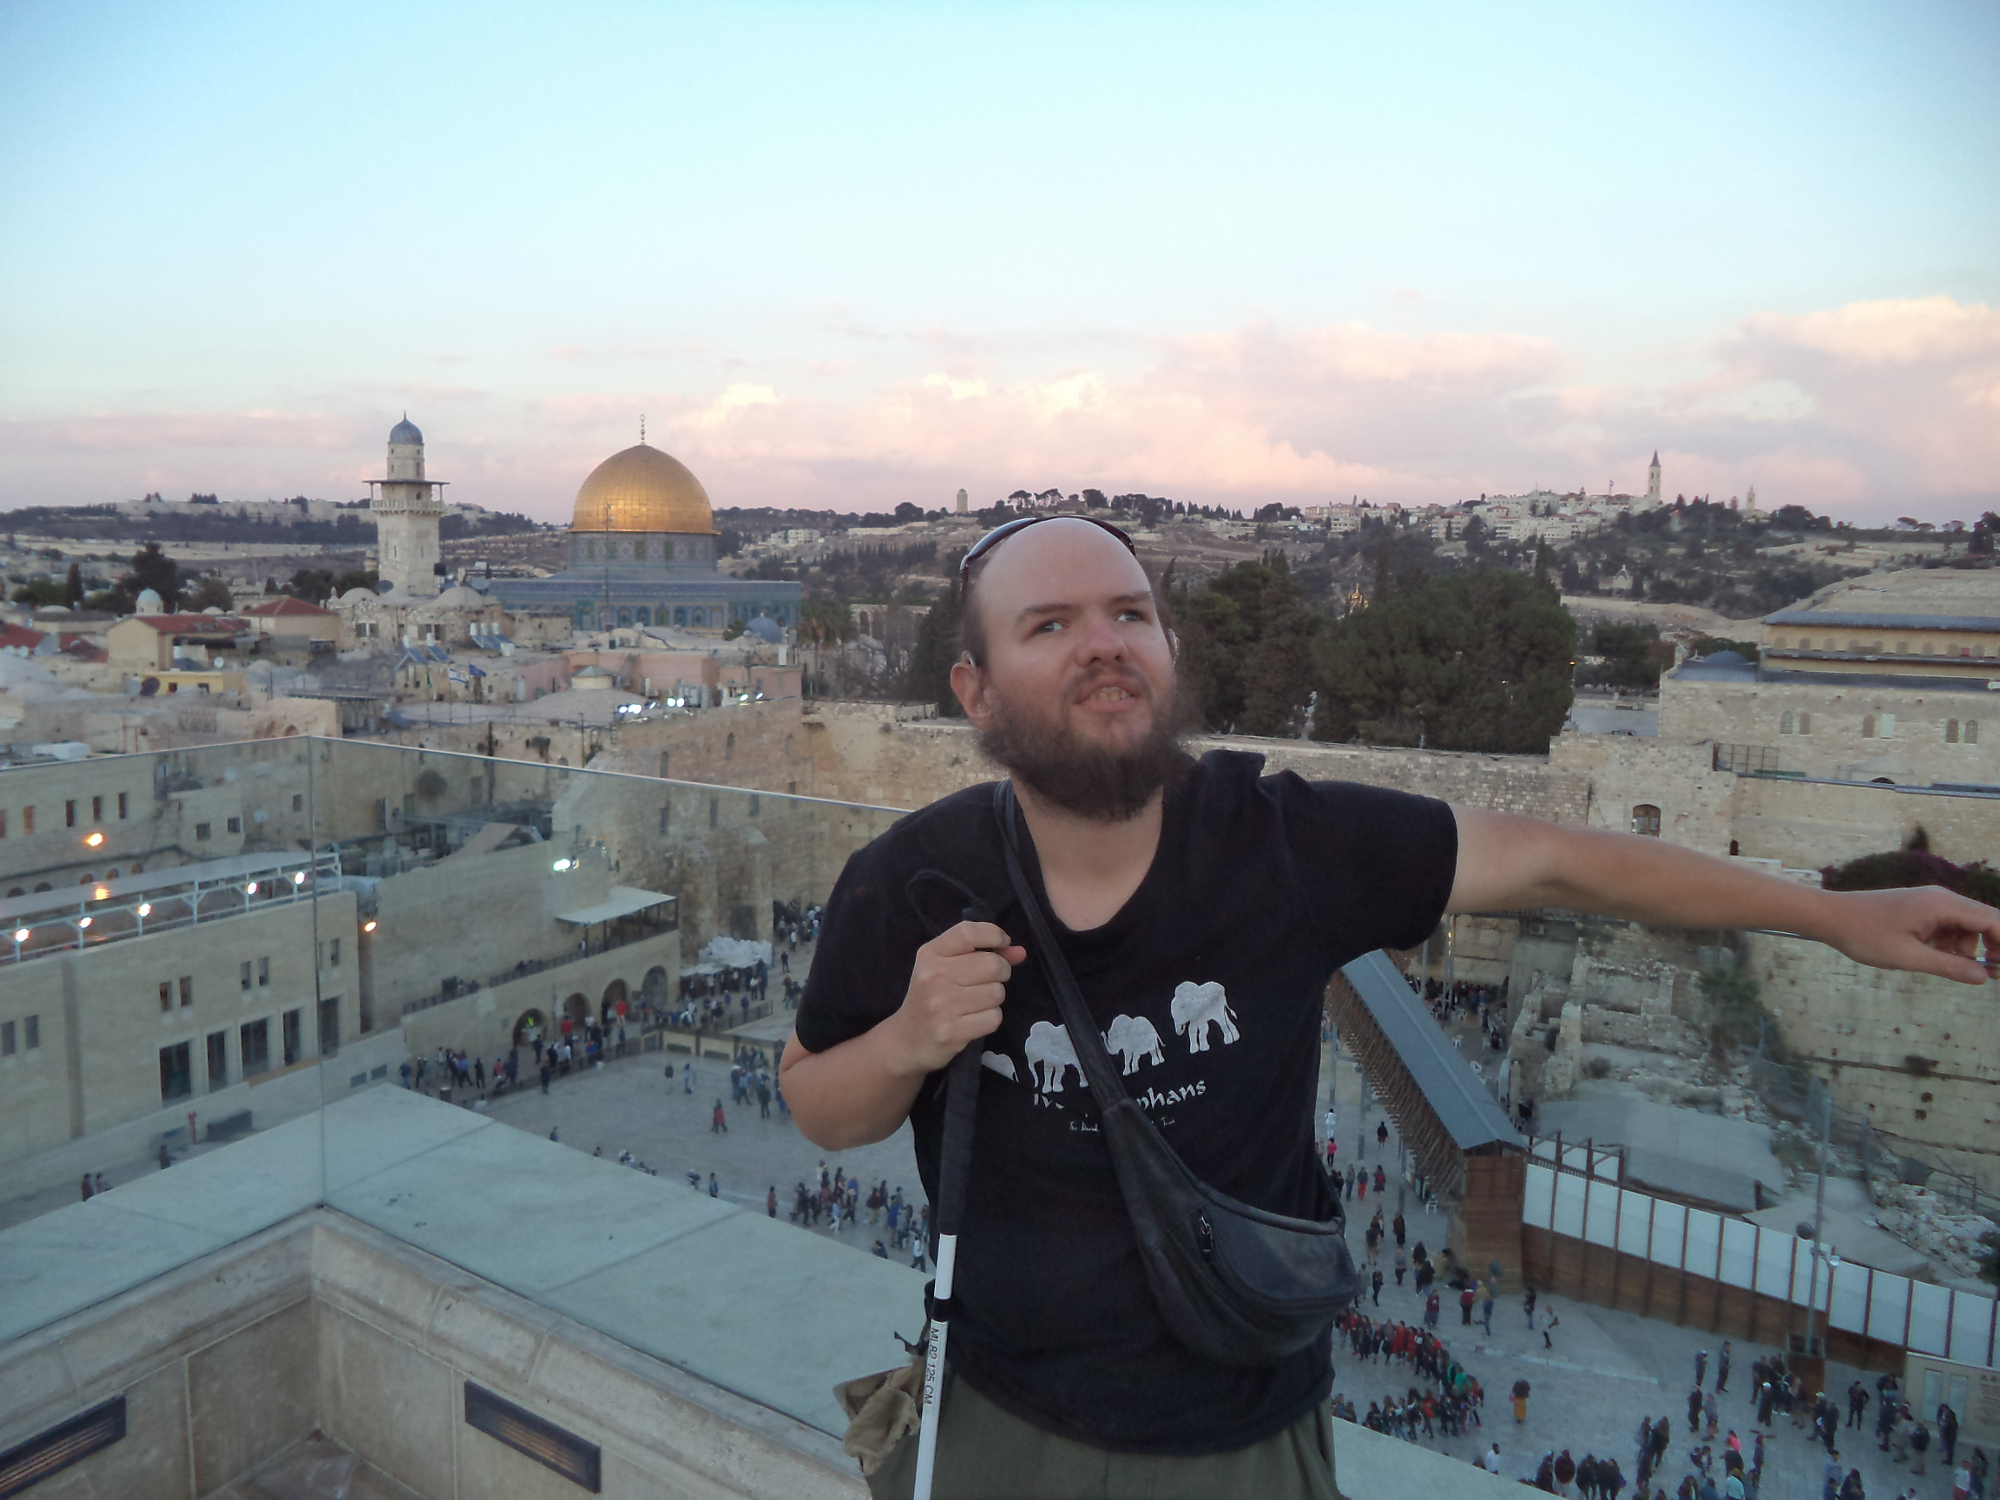 Tony at The Western Wall in Jerusalem.